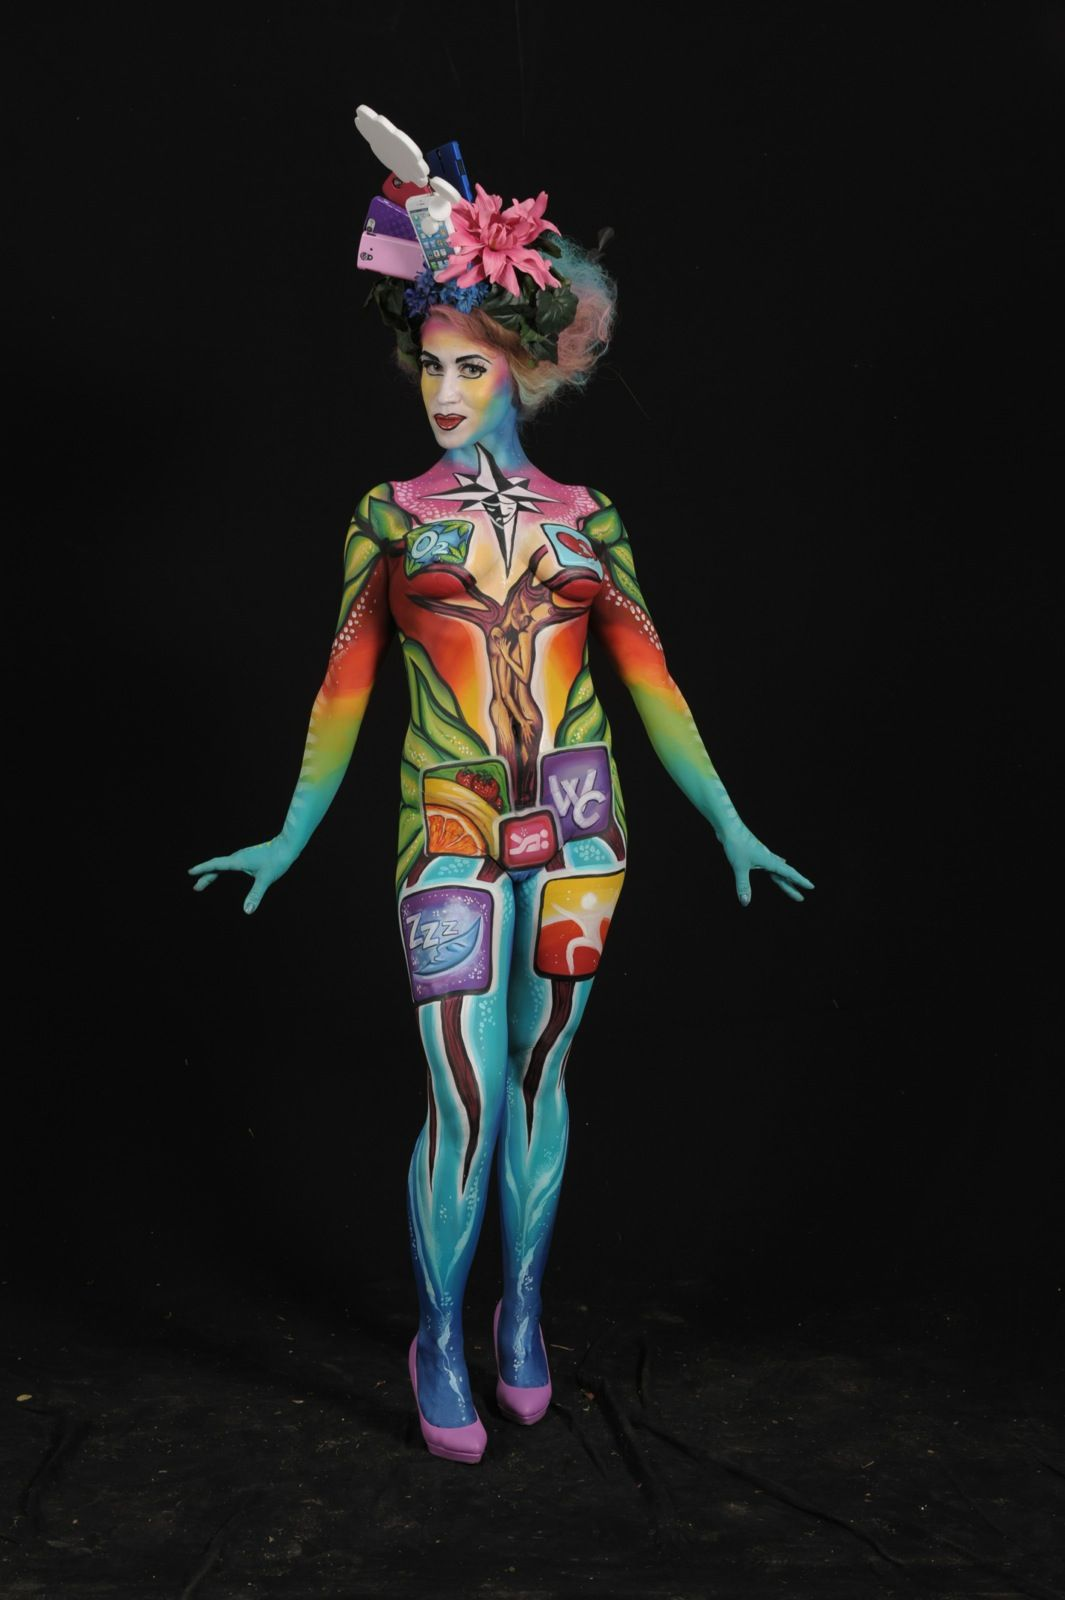 Fest300 - These Photos of the 2014 World Bodypainting ...